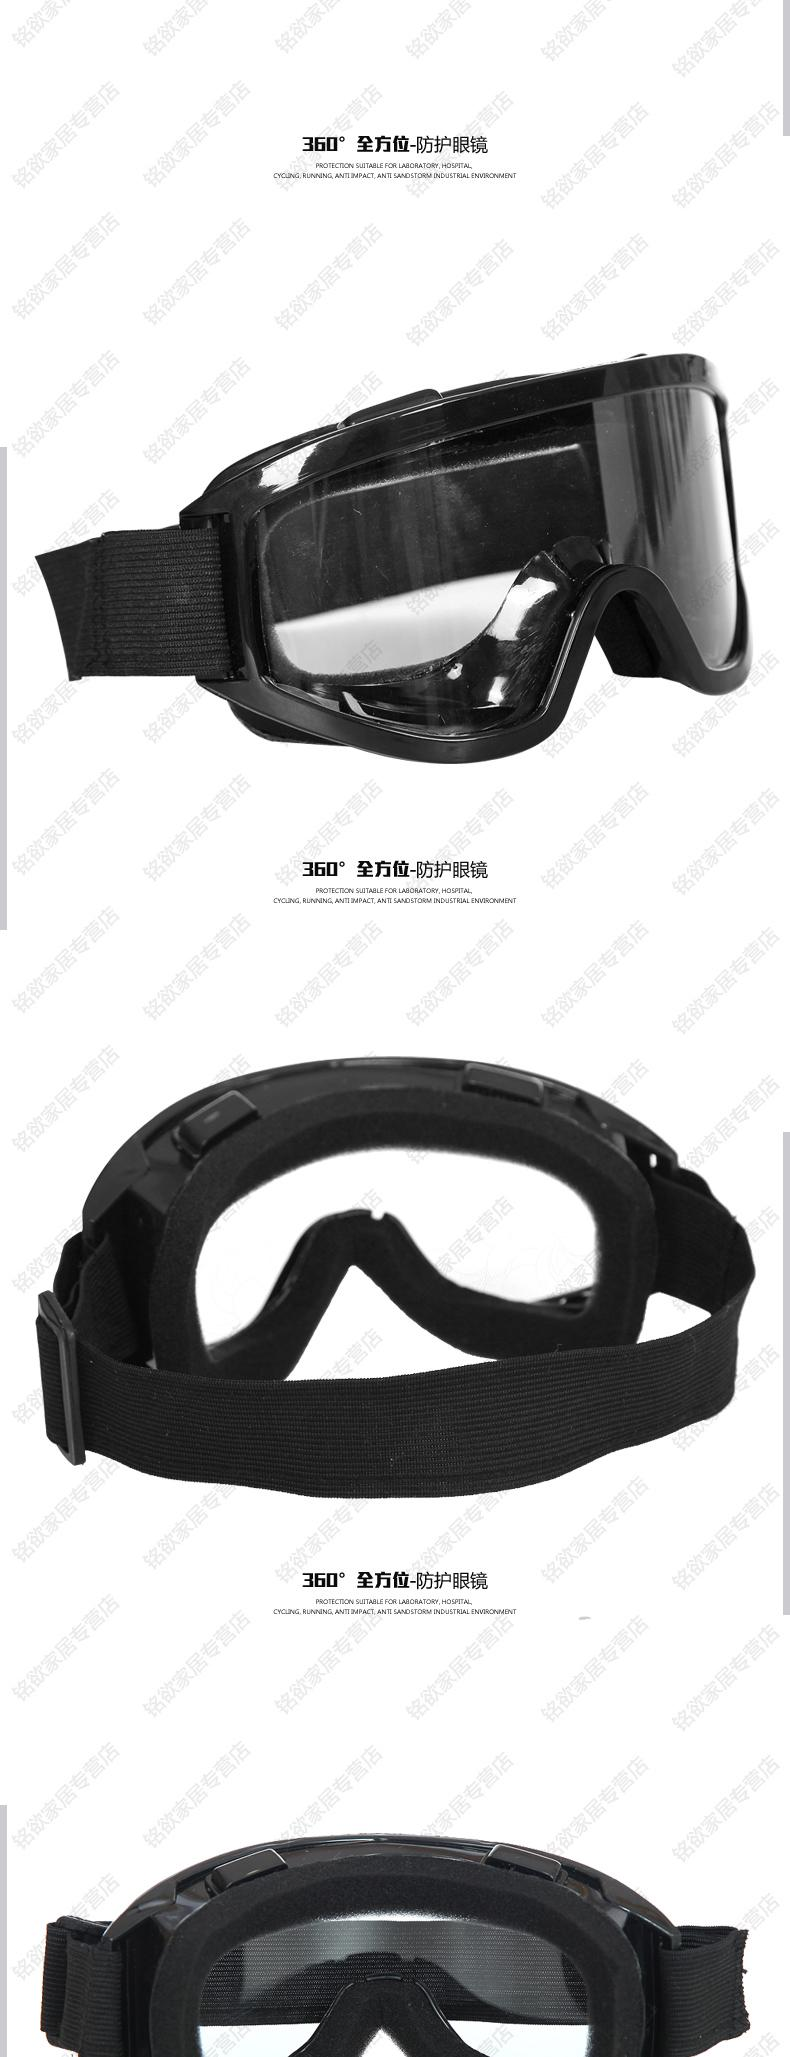 Hot Workplace Safety Supplies Eyes Protection Clear Protective Glasses Wind and Dust Anti-fog Lab Medical Use Safety Goggles 8